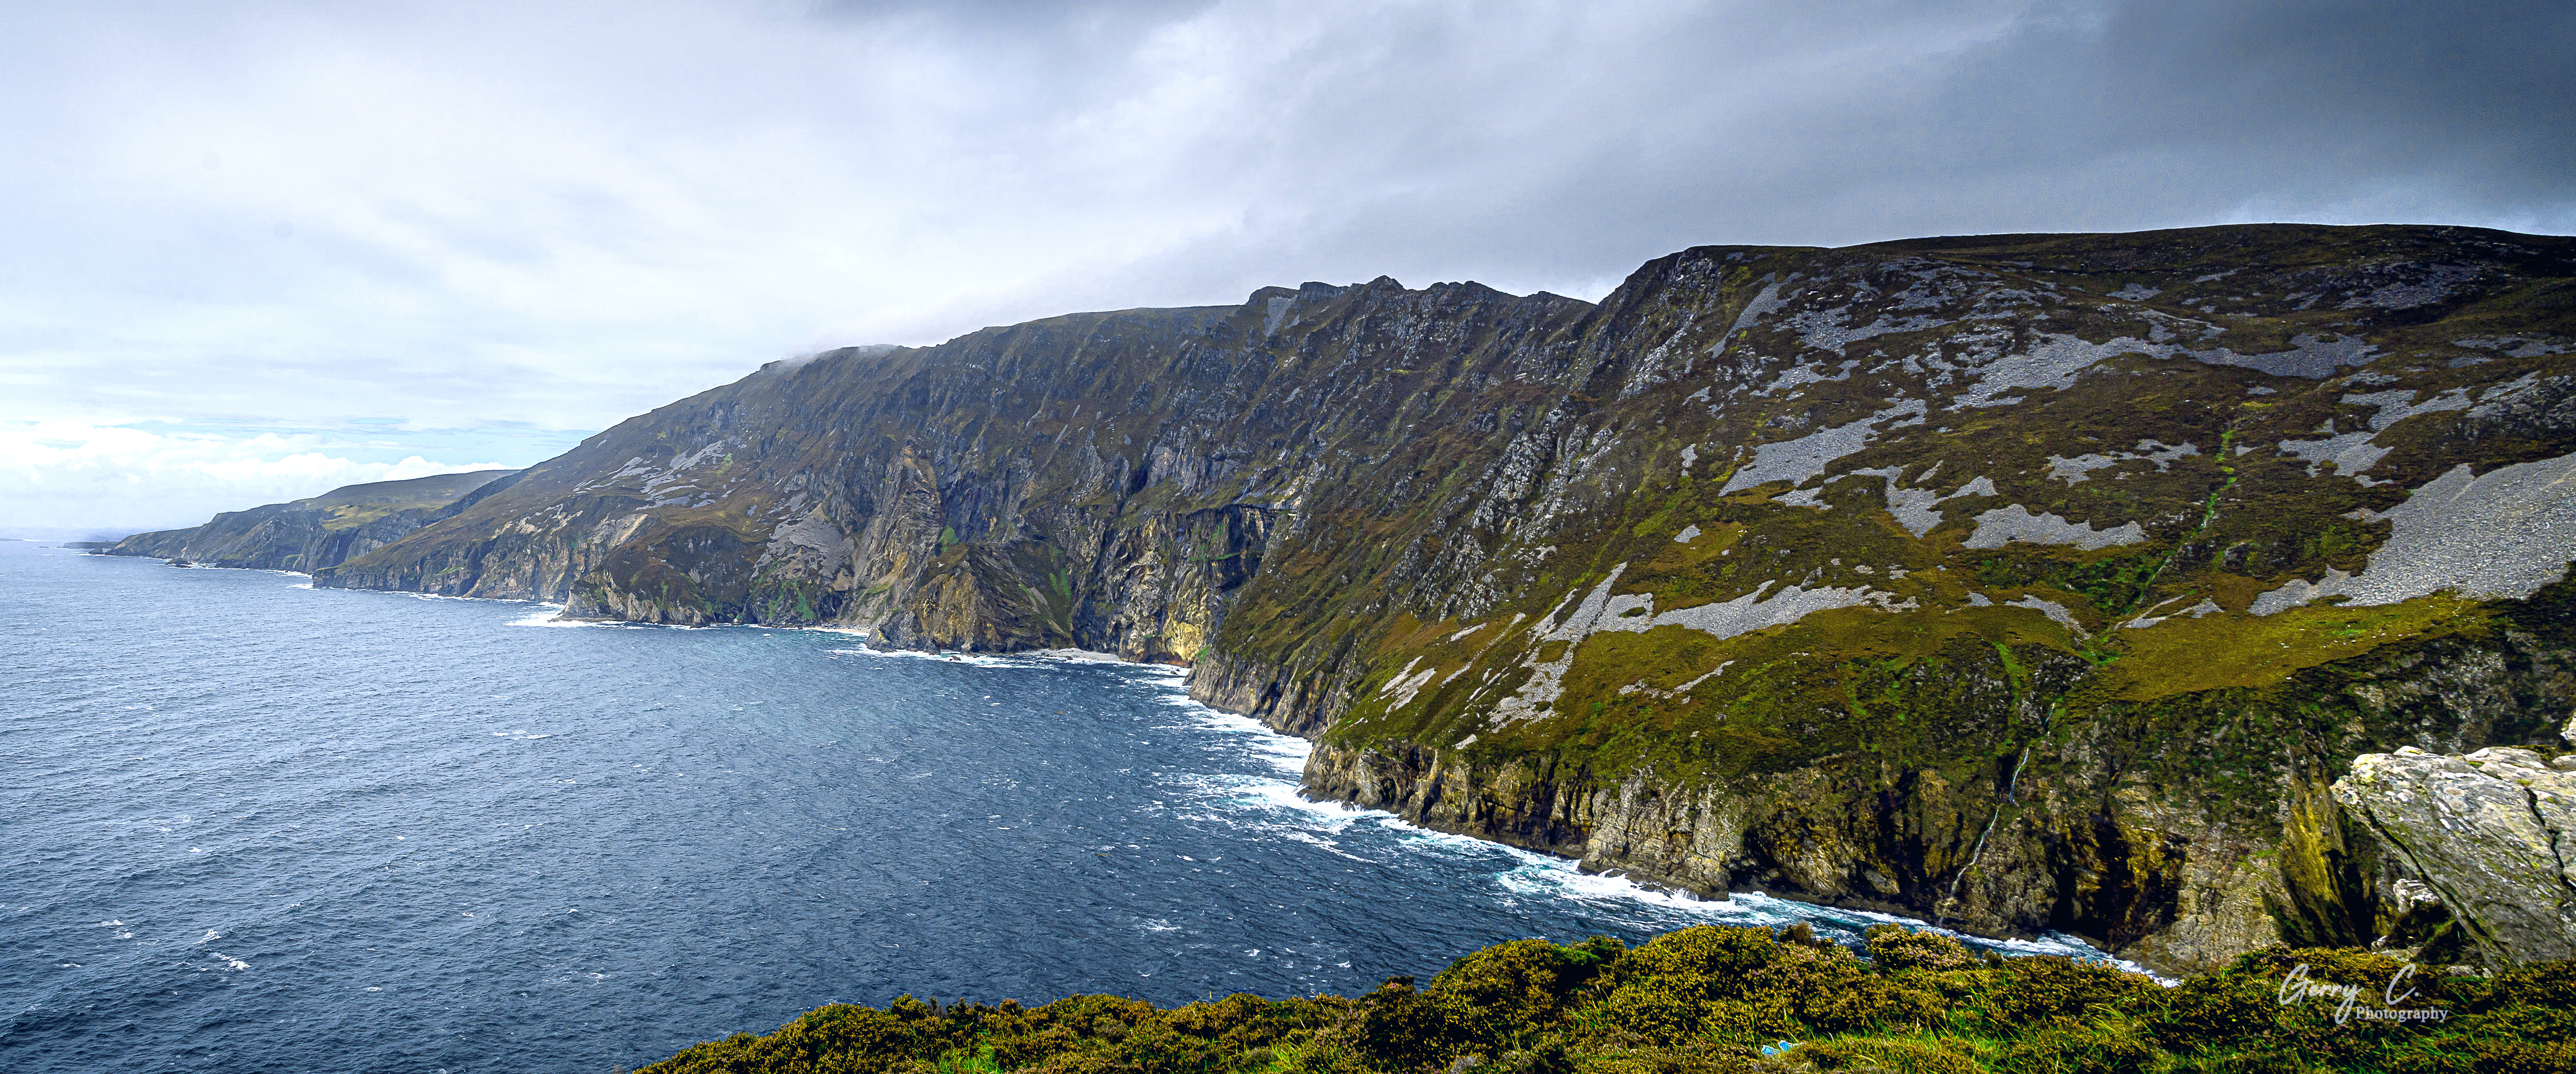 The Cliffs at Slieve League, Co. Donegal